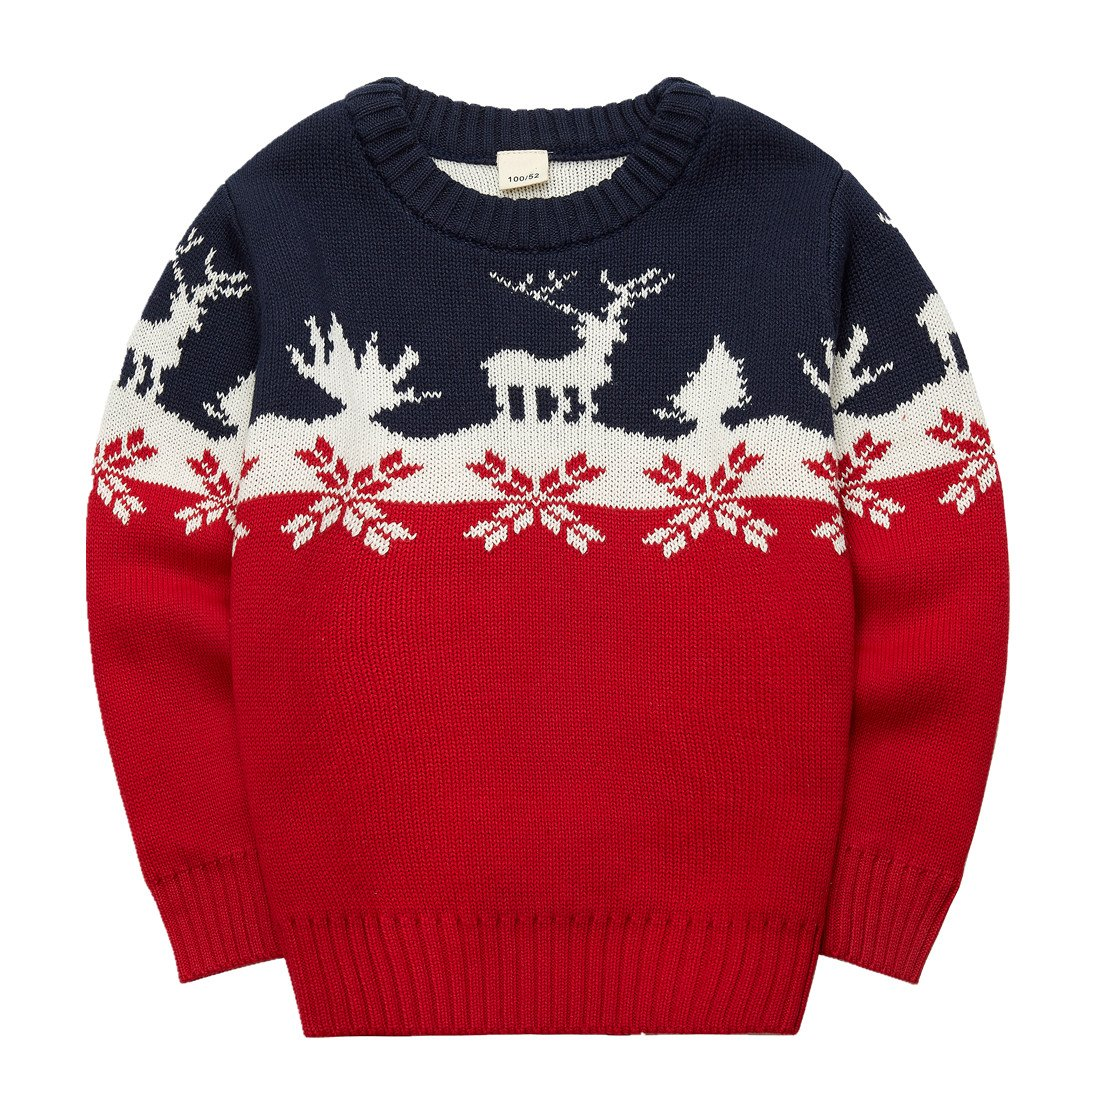 Sooxiwood Little Boys Sweater Pullover Chirstmas Top